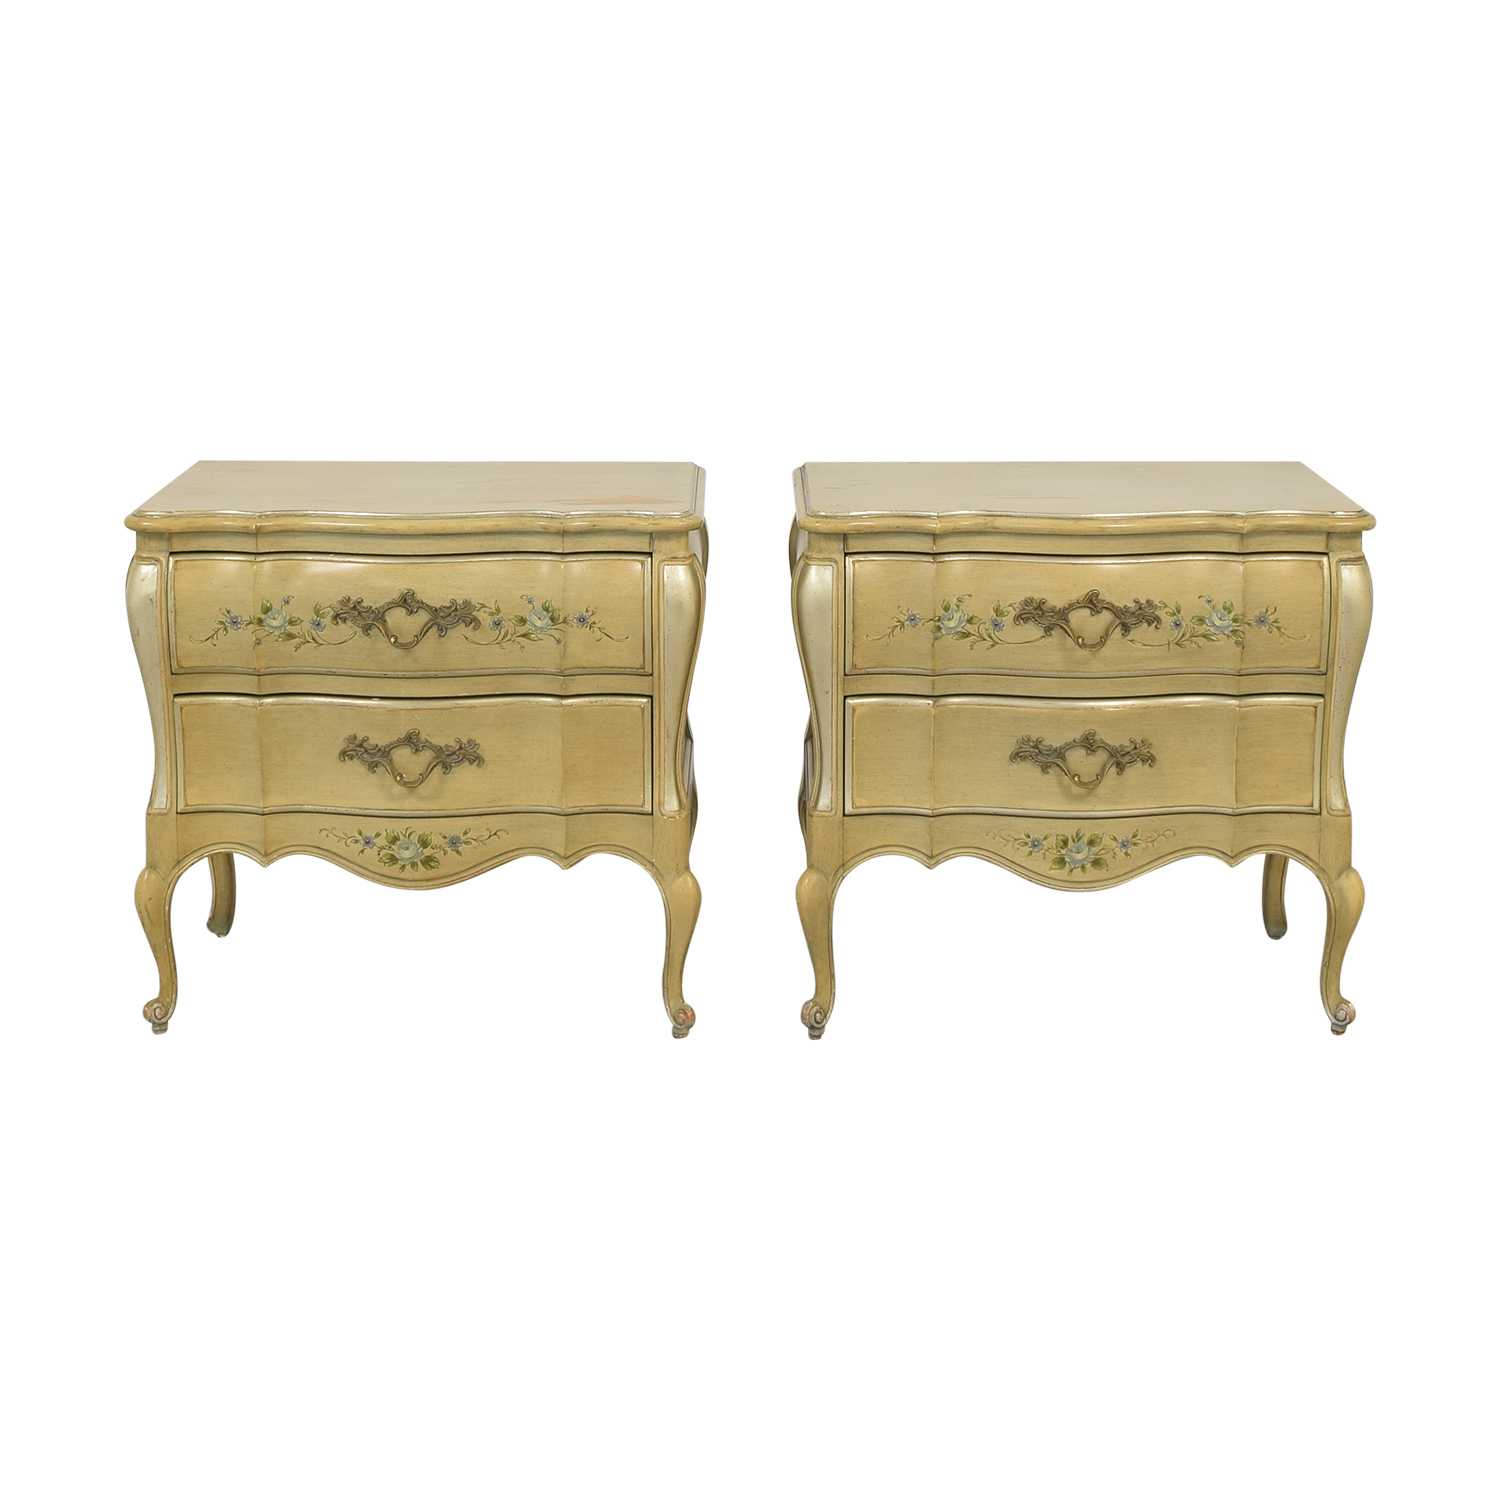 Rucker Industries Rucker Industries Dixon Powdermaker French Provincial Style Nightstands ct